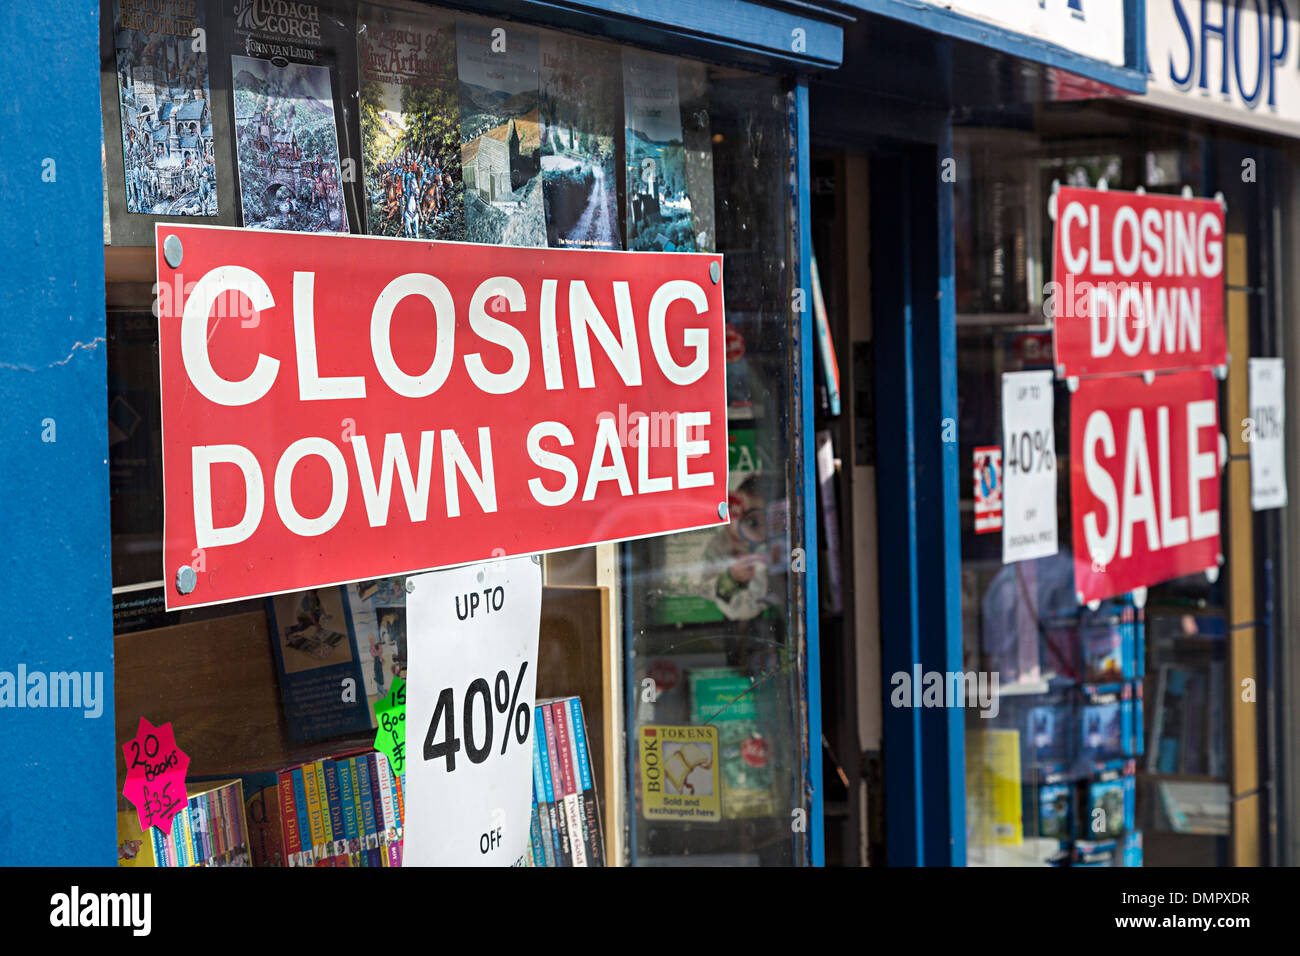 Closing down sale sign in book shop window, Abergavenny, Wales, UK - Stock Image